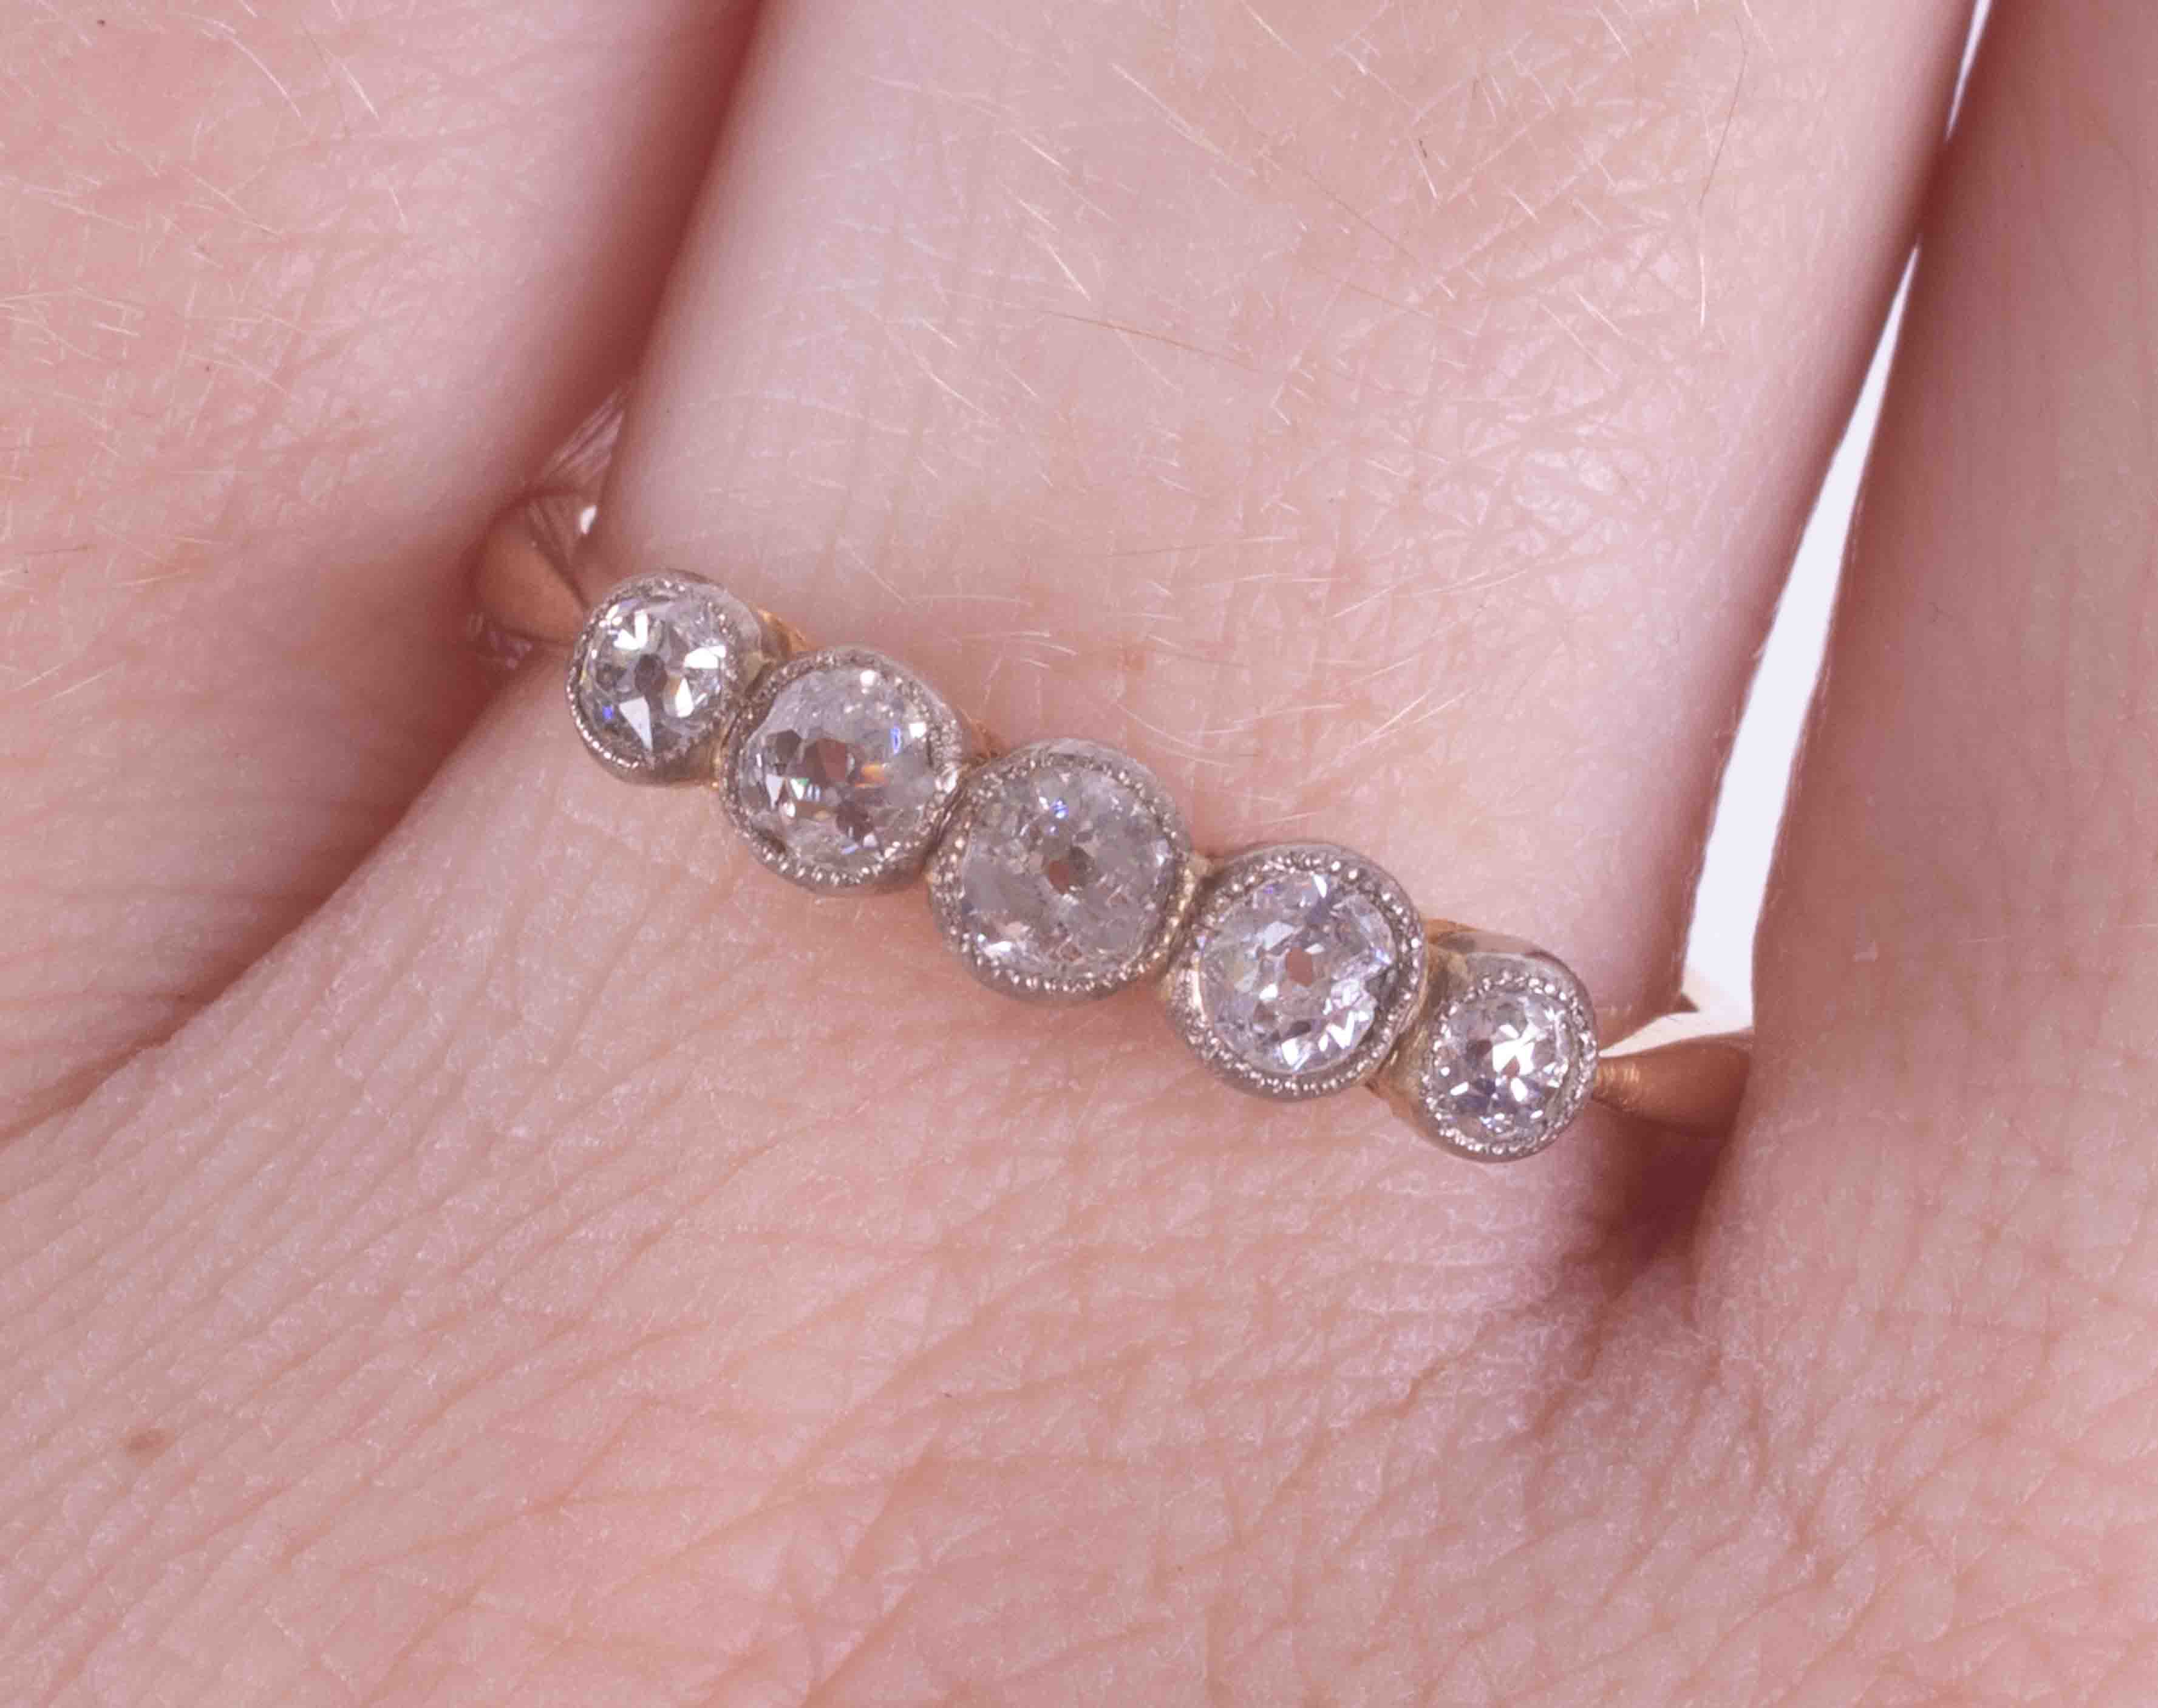 An 18ct yellow gold five stone ring set with approx. 0.79 carats of old round cut diamonds, 2.84g, - Image 2 of 2